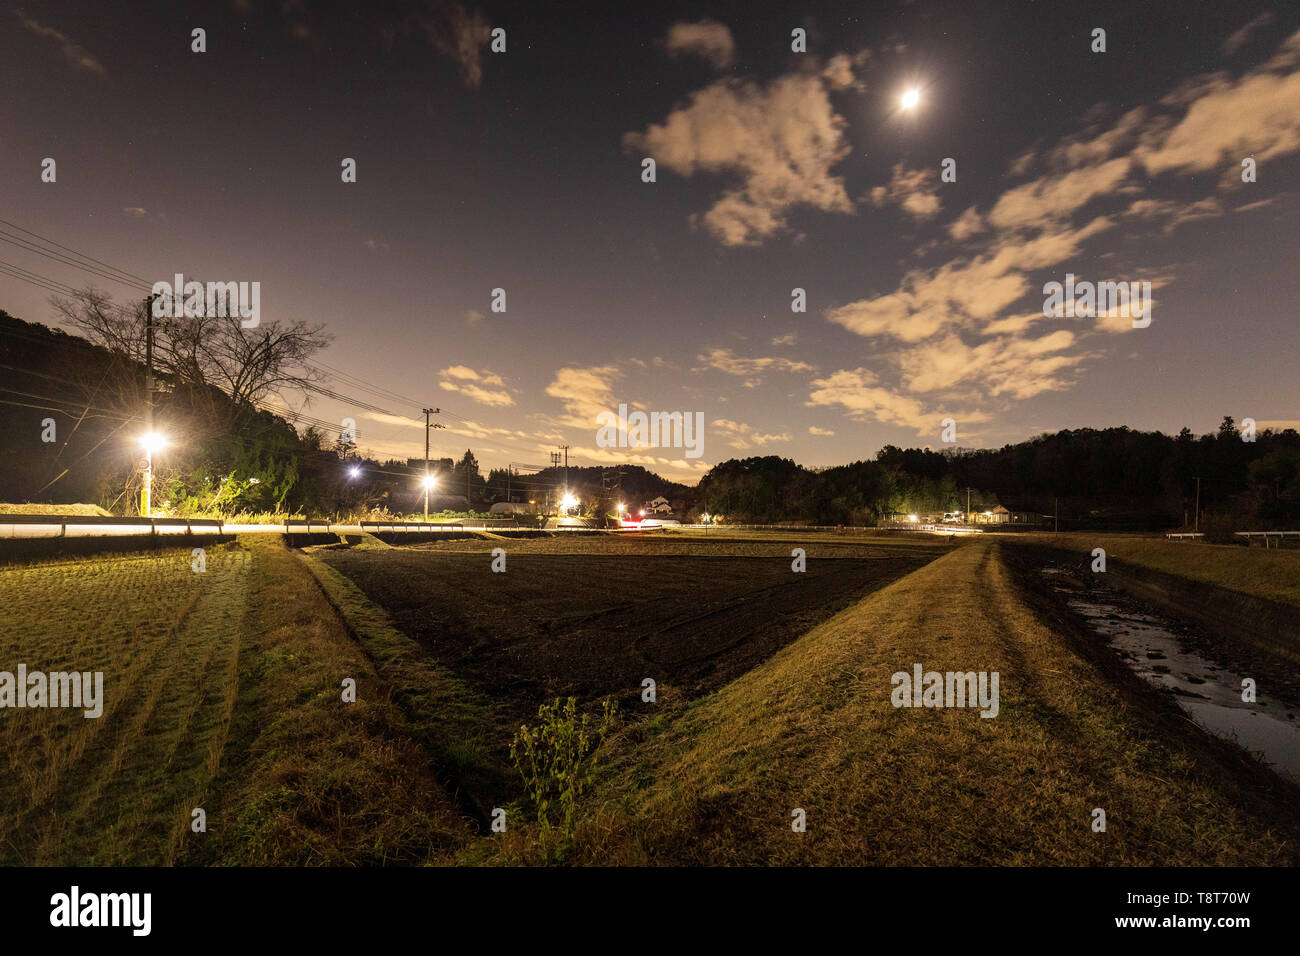 Bright moon shines in night sky over rural rice fields in Kyoto Prefecture - Stock Image